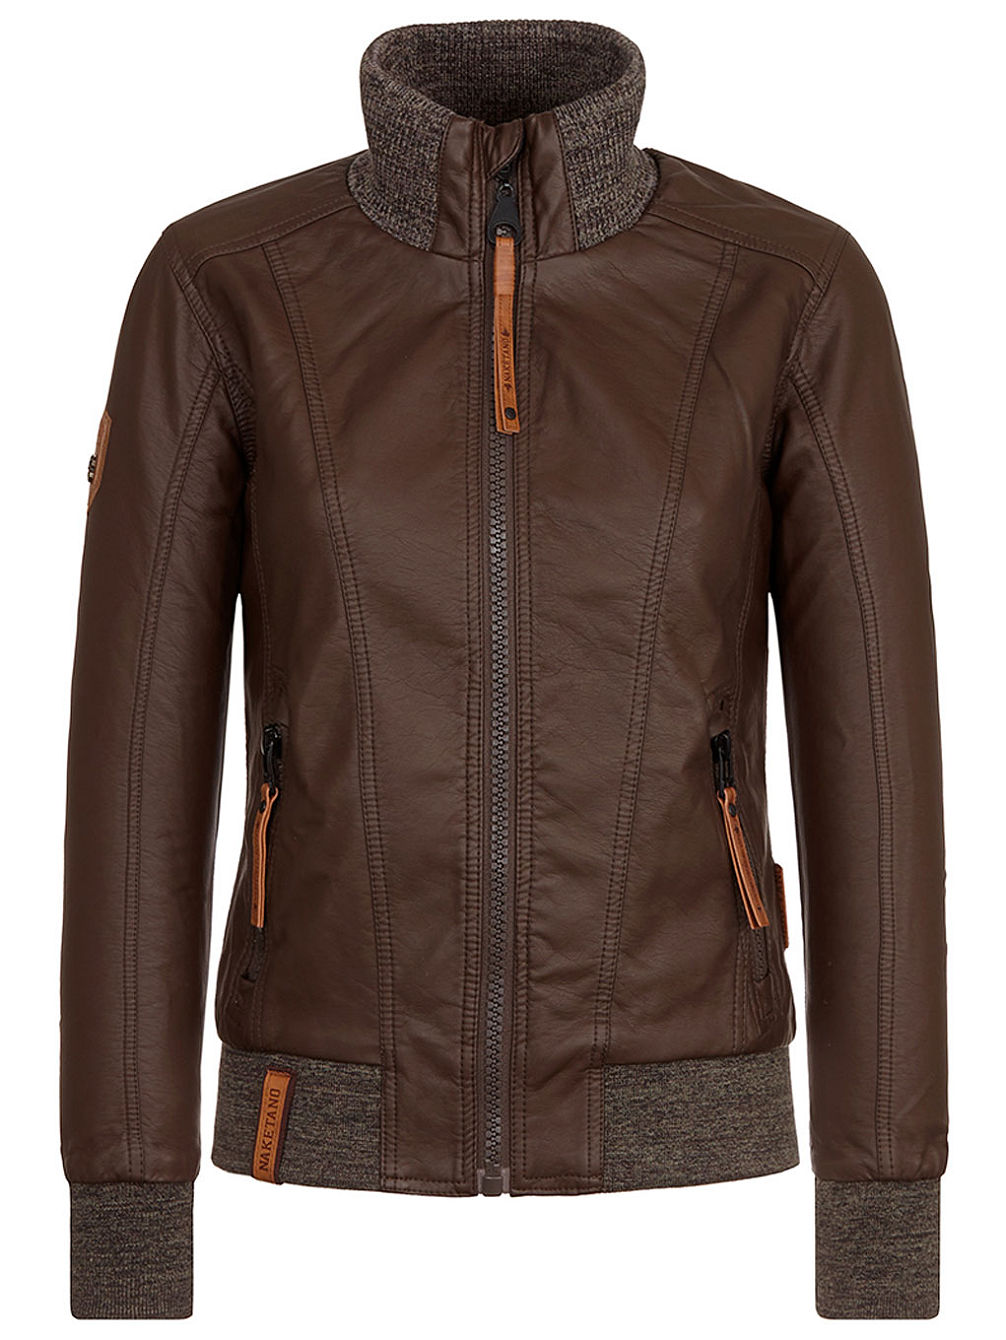 Andy Alten Wemser Jacket